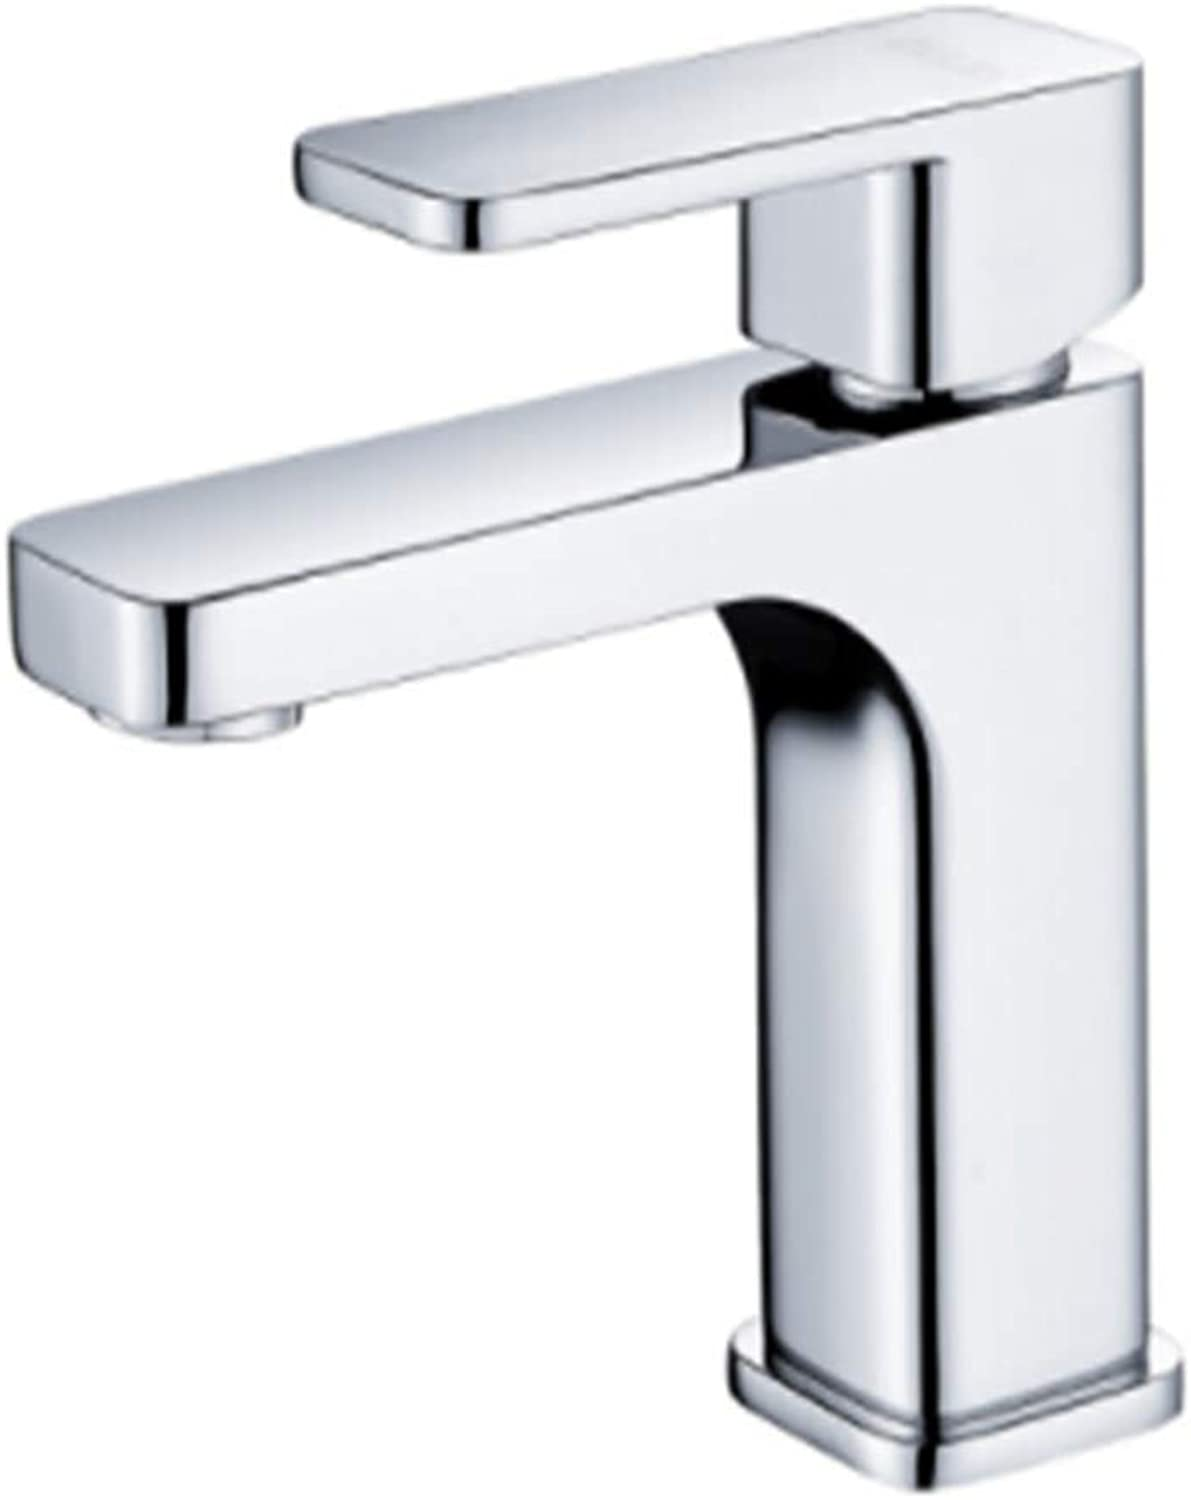 Kitchen Faucet Tapstainless Steelkitchen Faucet Probasin, Water Faucet, Hot and Cold Wash Basin, Toilet, Wash Basin, Faucet Basin Faucet.